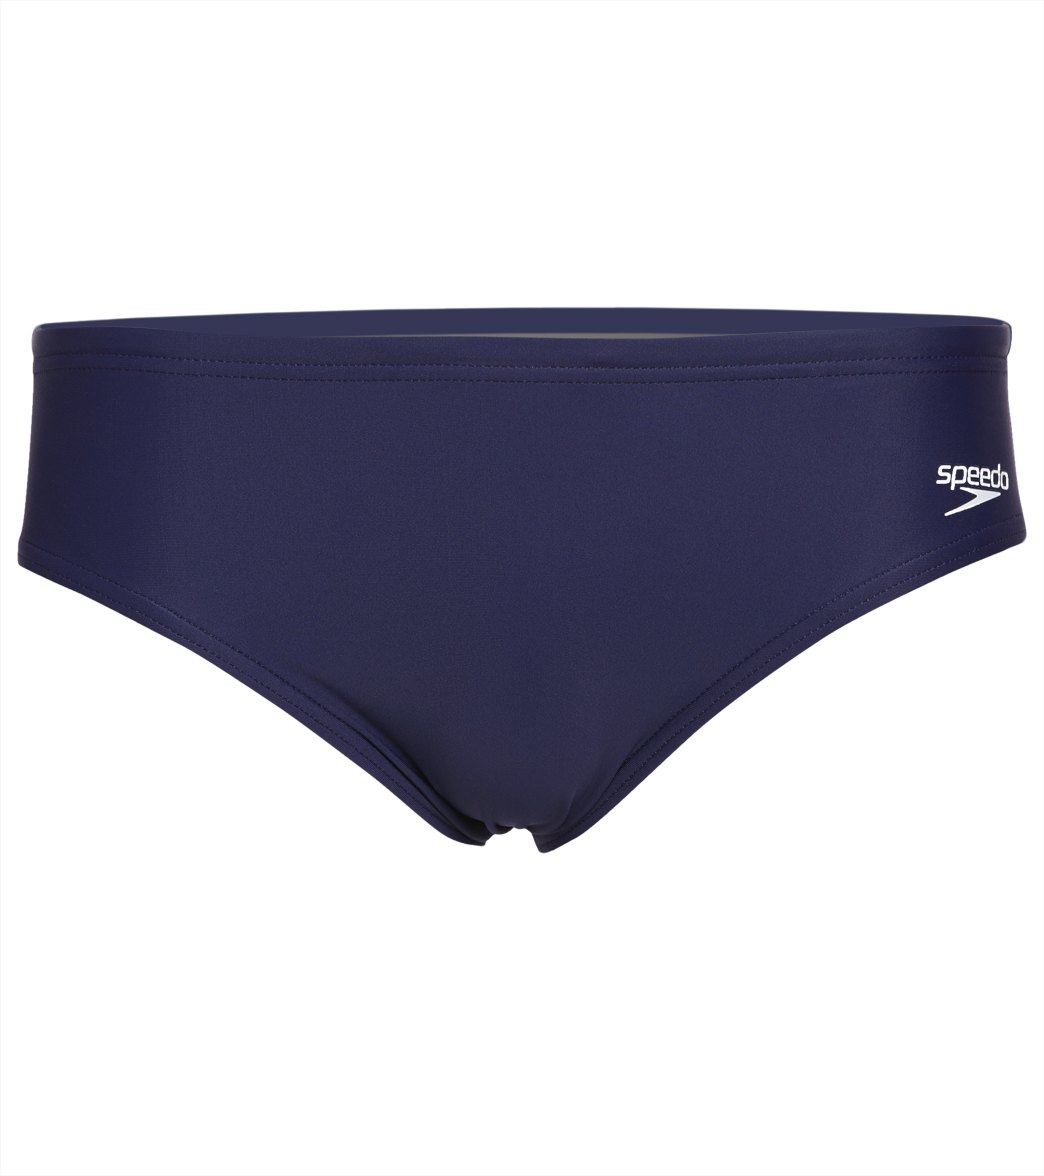 92bd9eaafe Speedo PowerFLEX Eco Solid Men's Brief Swimsuit at SwimOutlet.com